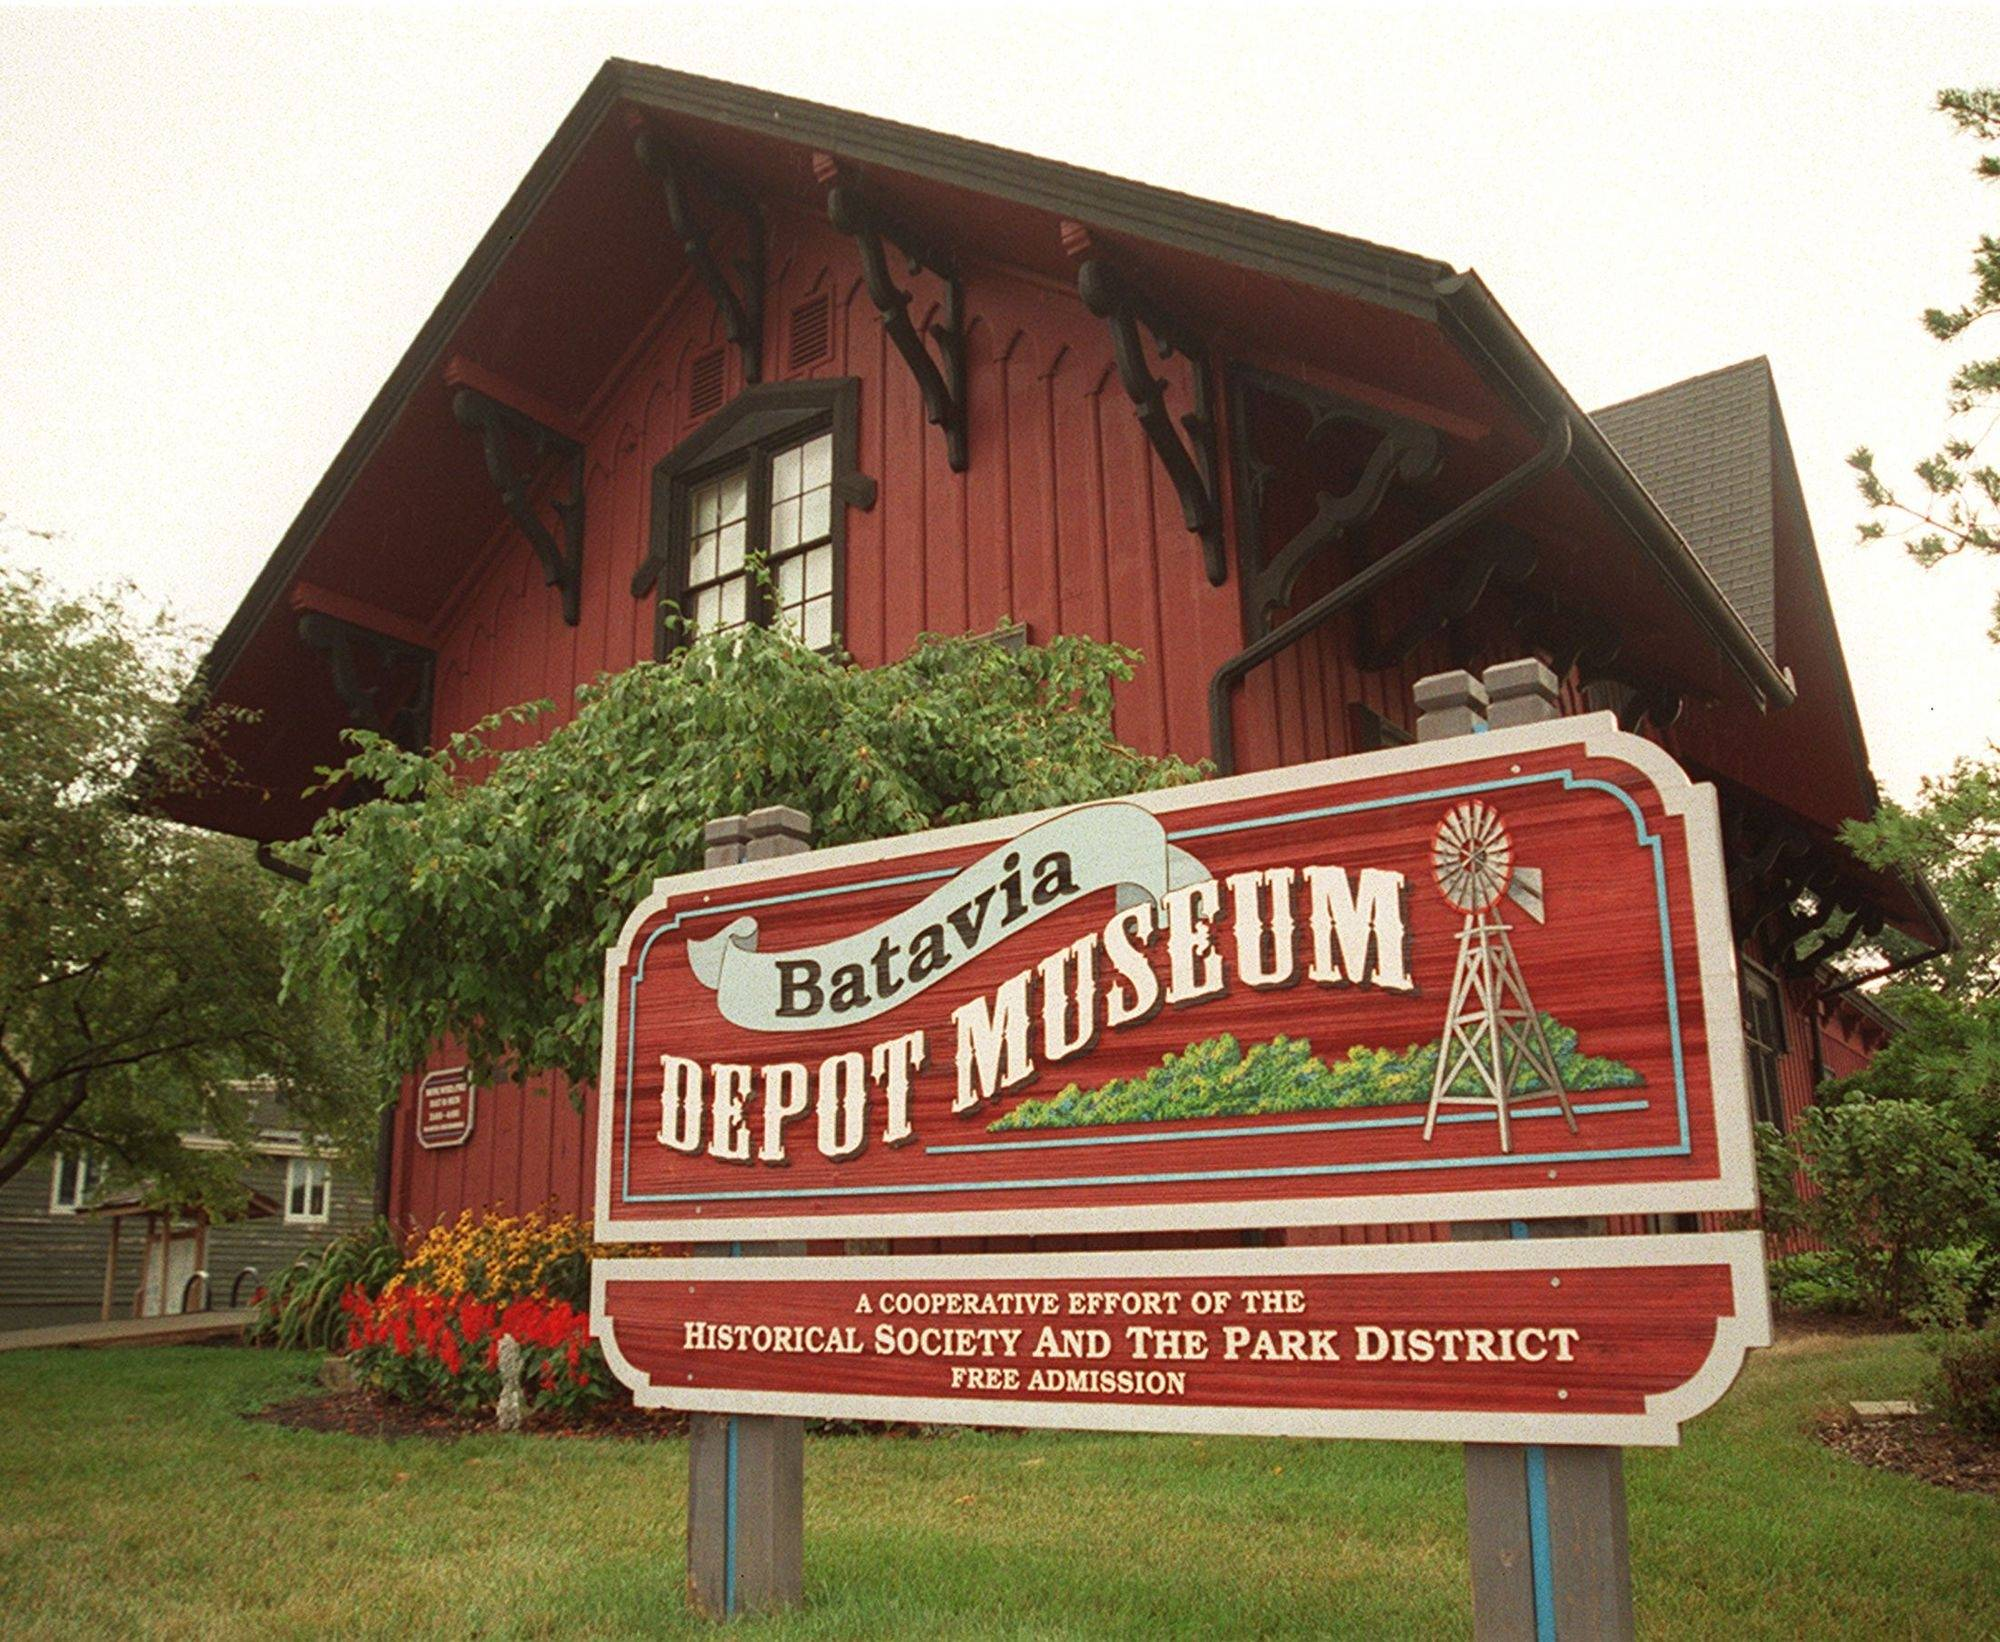 The Depot Museum near the Batavia Riverwalk.